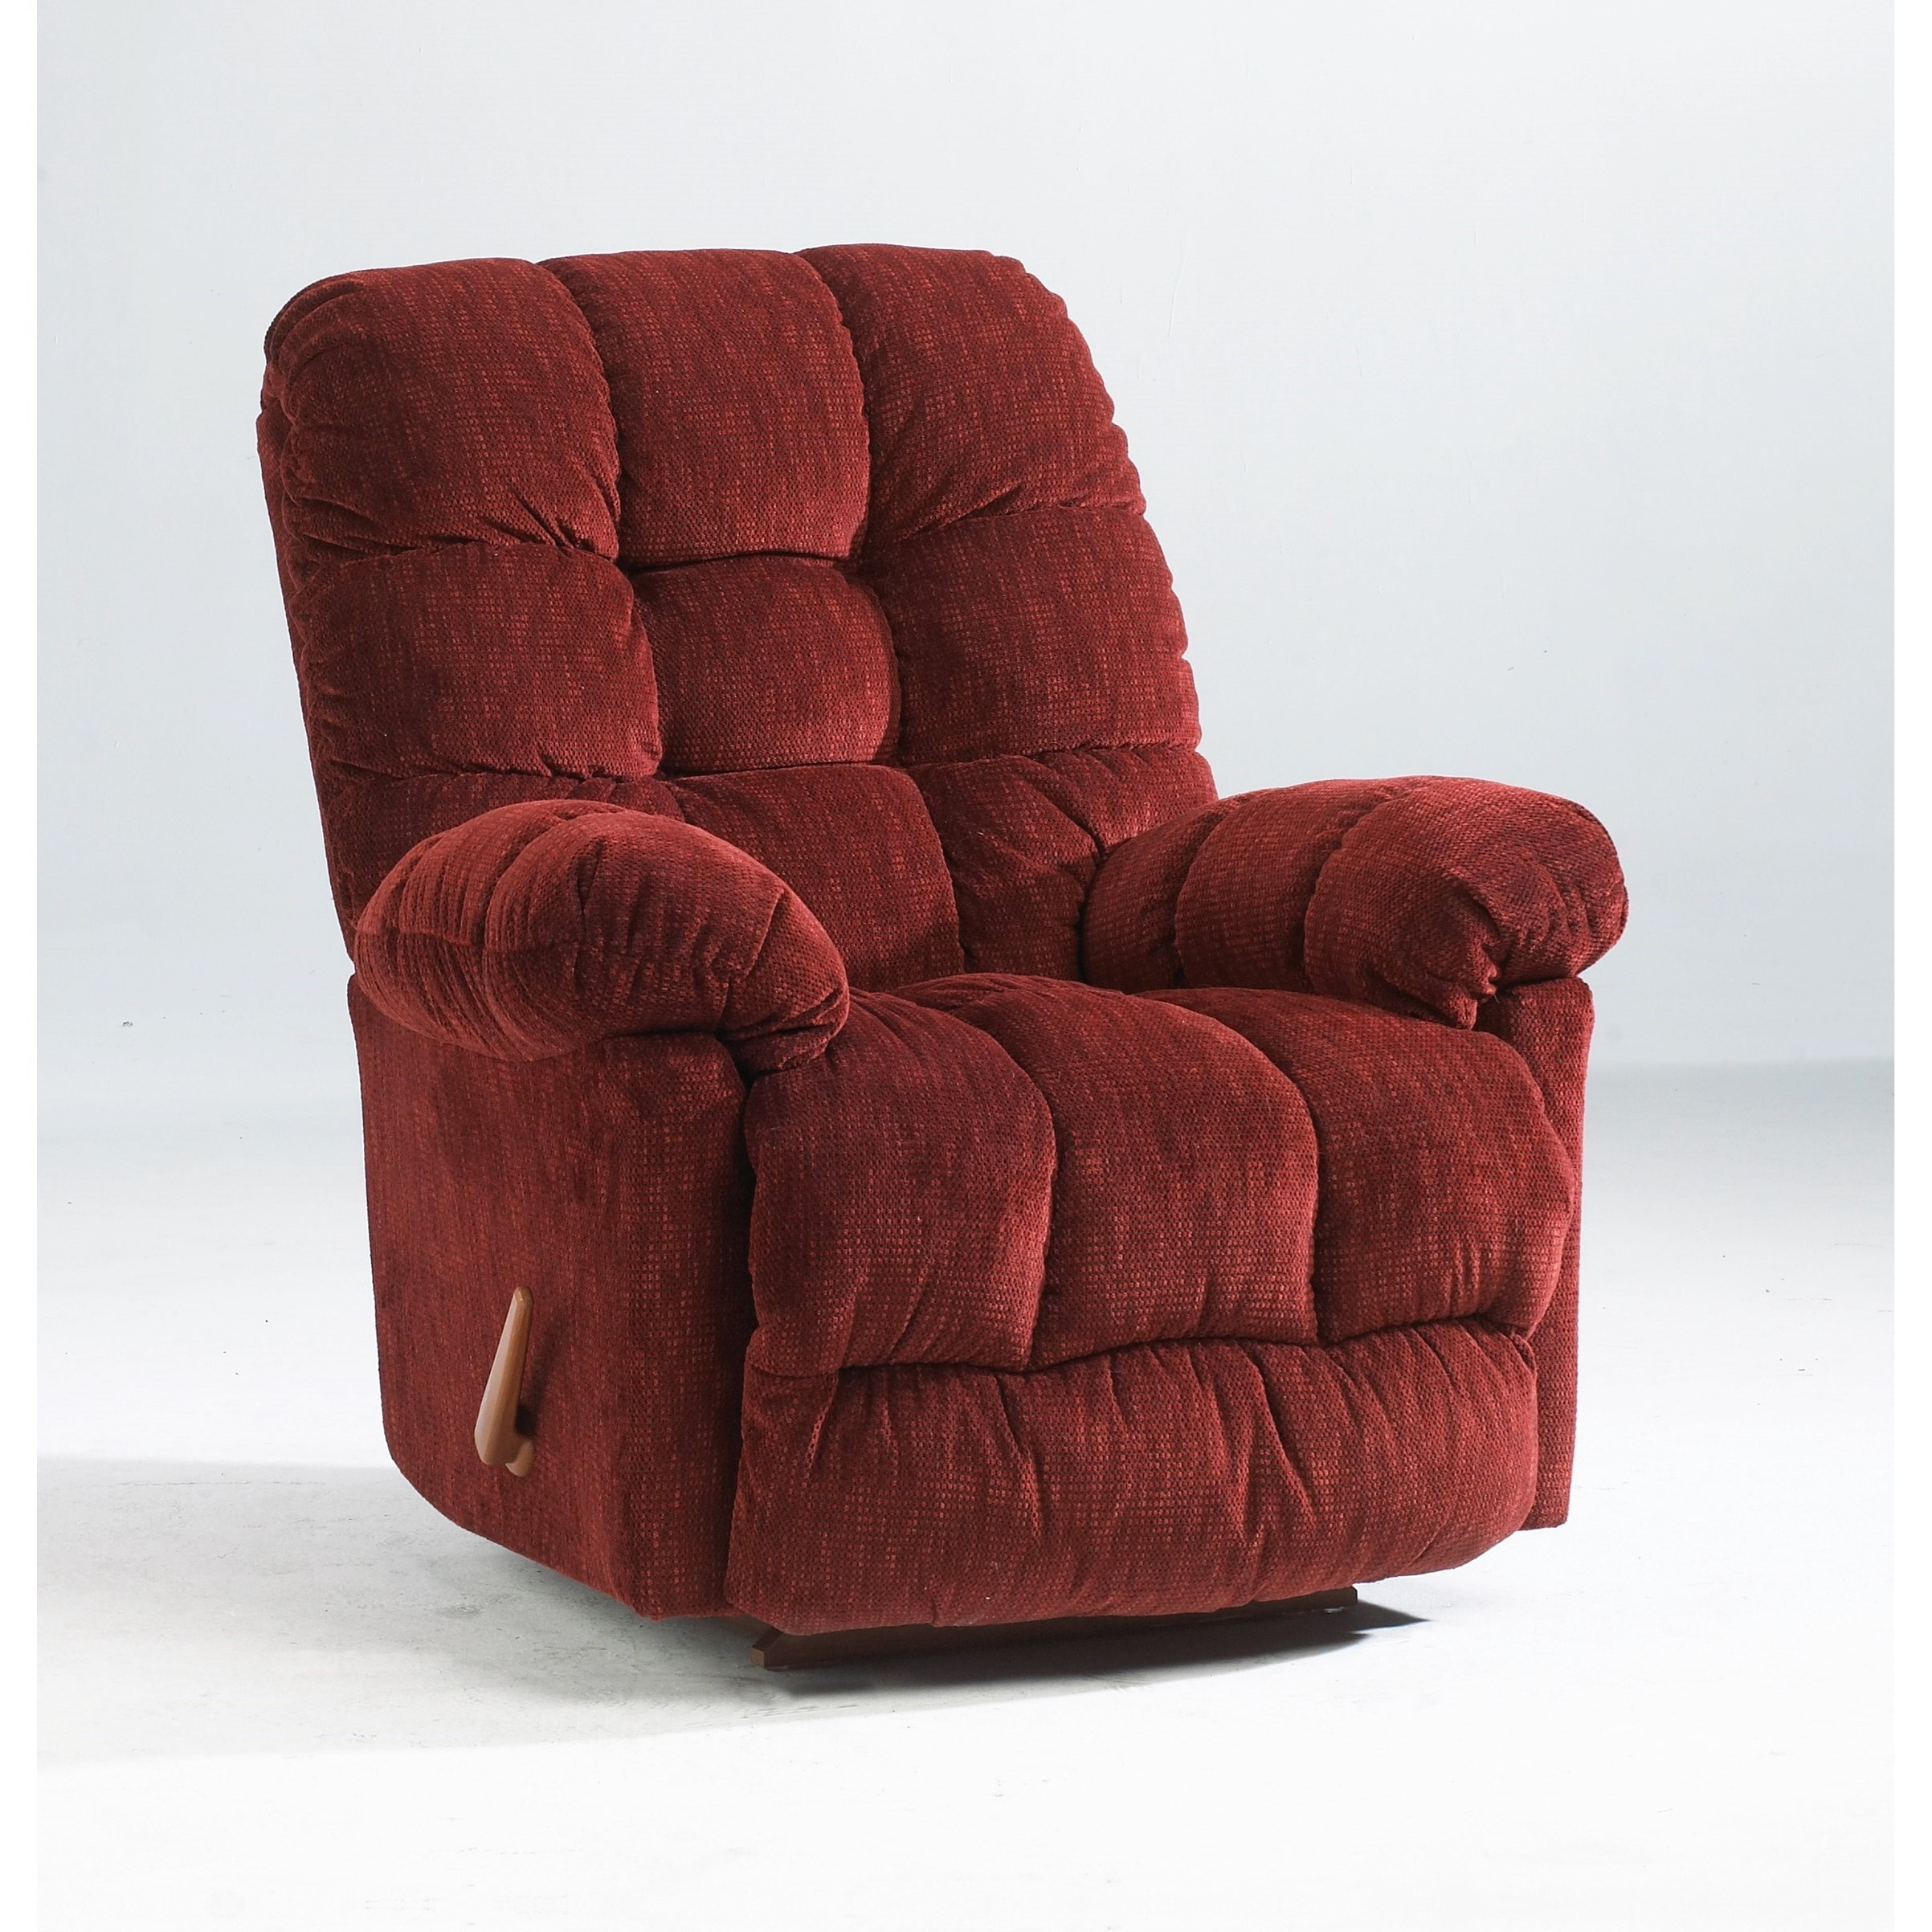 Medium Recliners Brosmer Wallhugger Recliner w/ Massage & Ht by Best Home Furnishings at Mueller Furniture